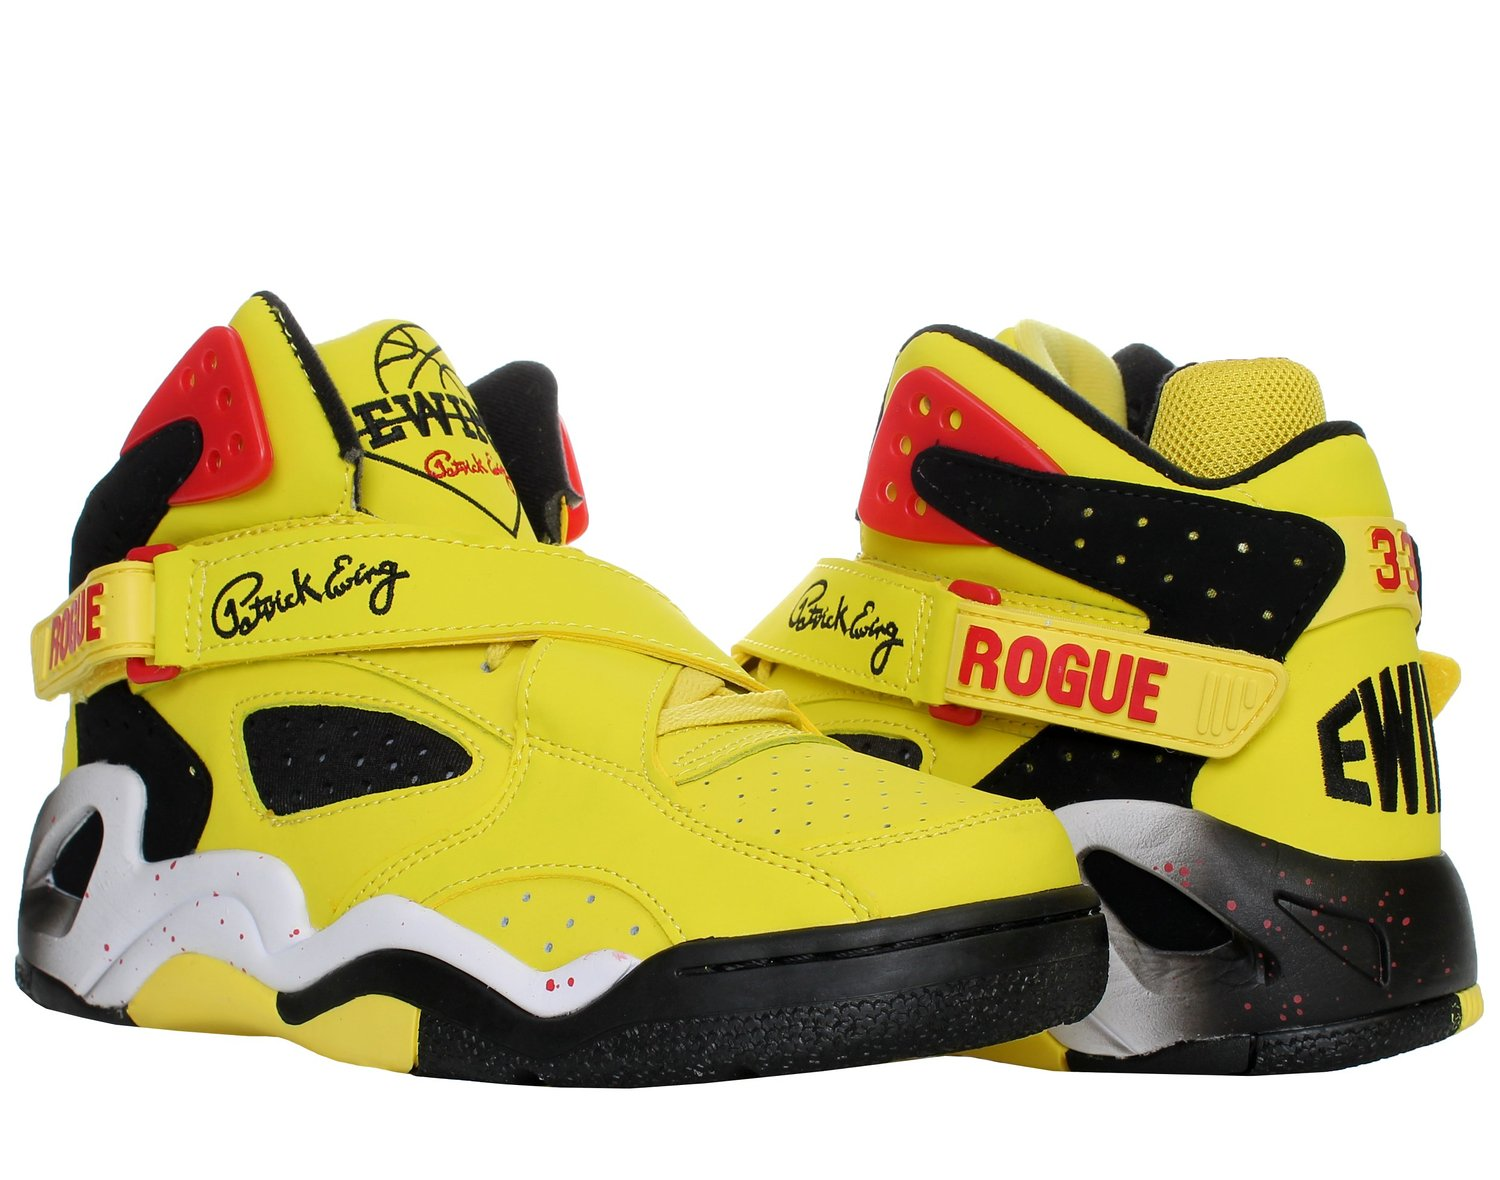 low priced 8e9cb cb5bb Get Quotations · Ewing Athletics Ewing Rogue Men s Basketball Shoes  1EW90134-704